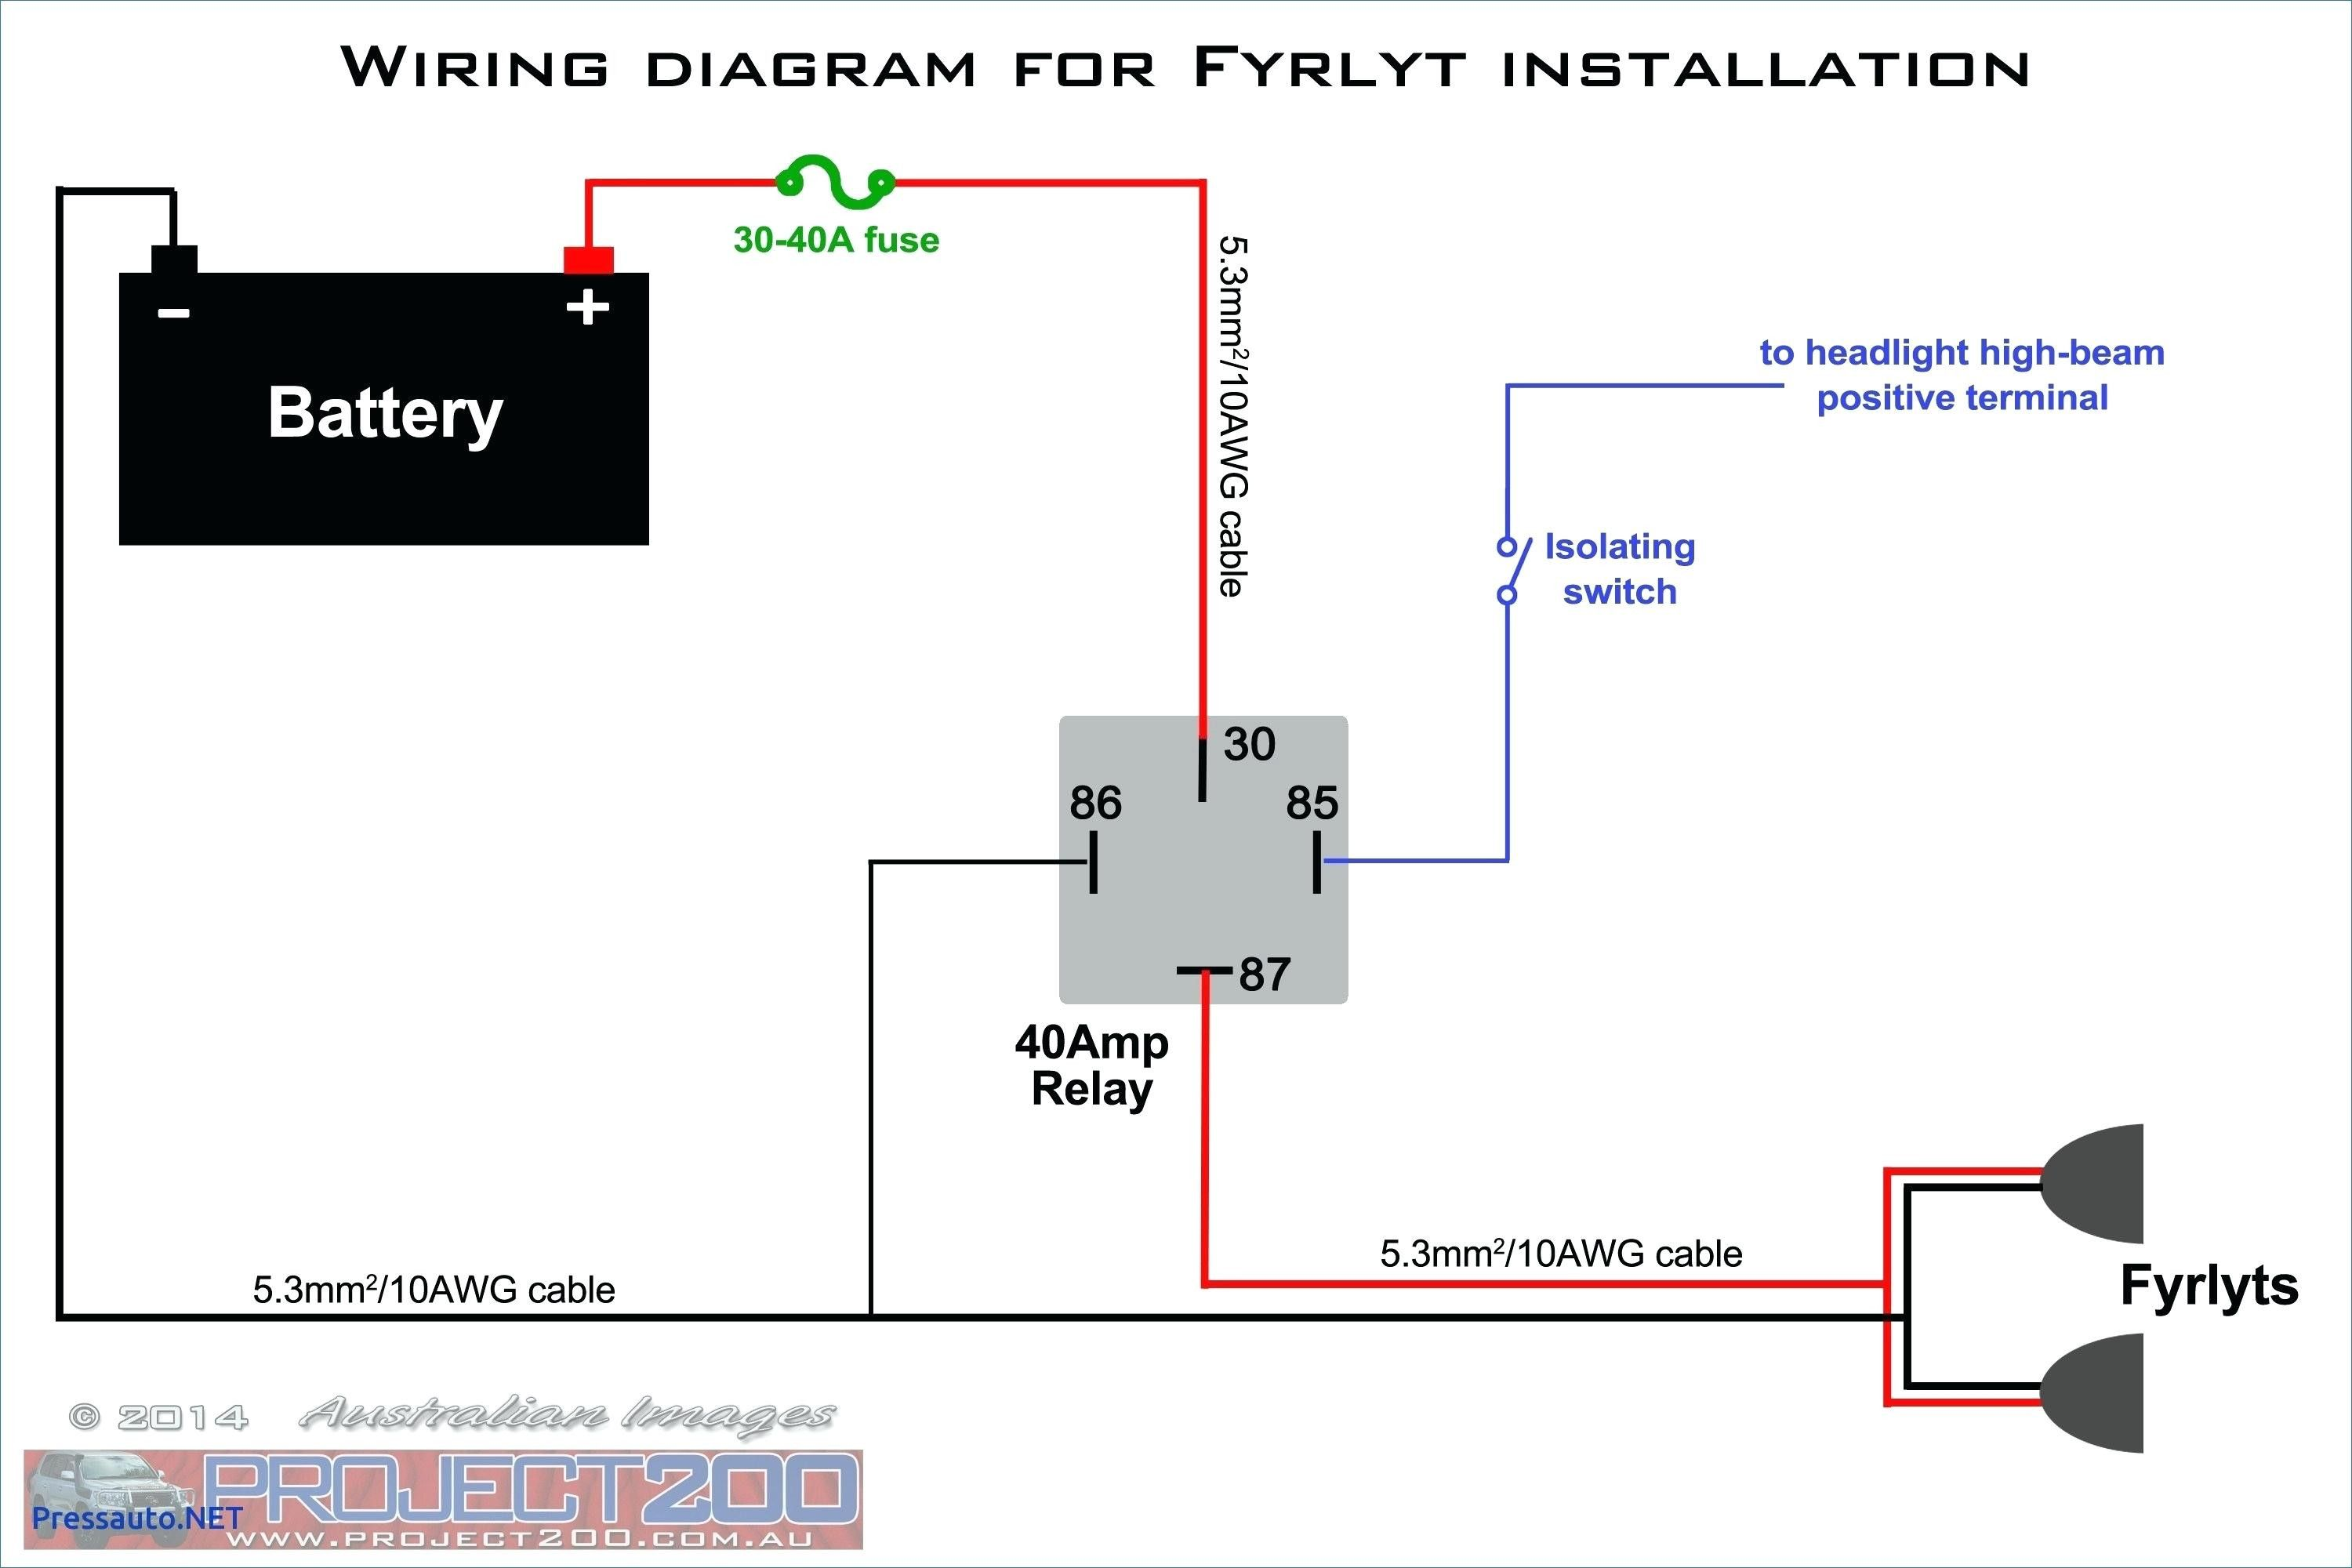 12v 5 Pin Relay Wiring Diagram Driving Lights How To Wire Of Kc At ... |  Electrical circuit diagram, Electrical wiring diagram, Diagram